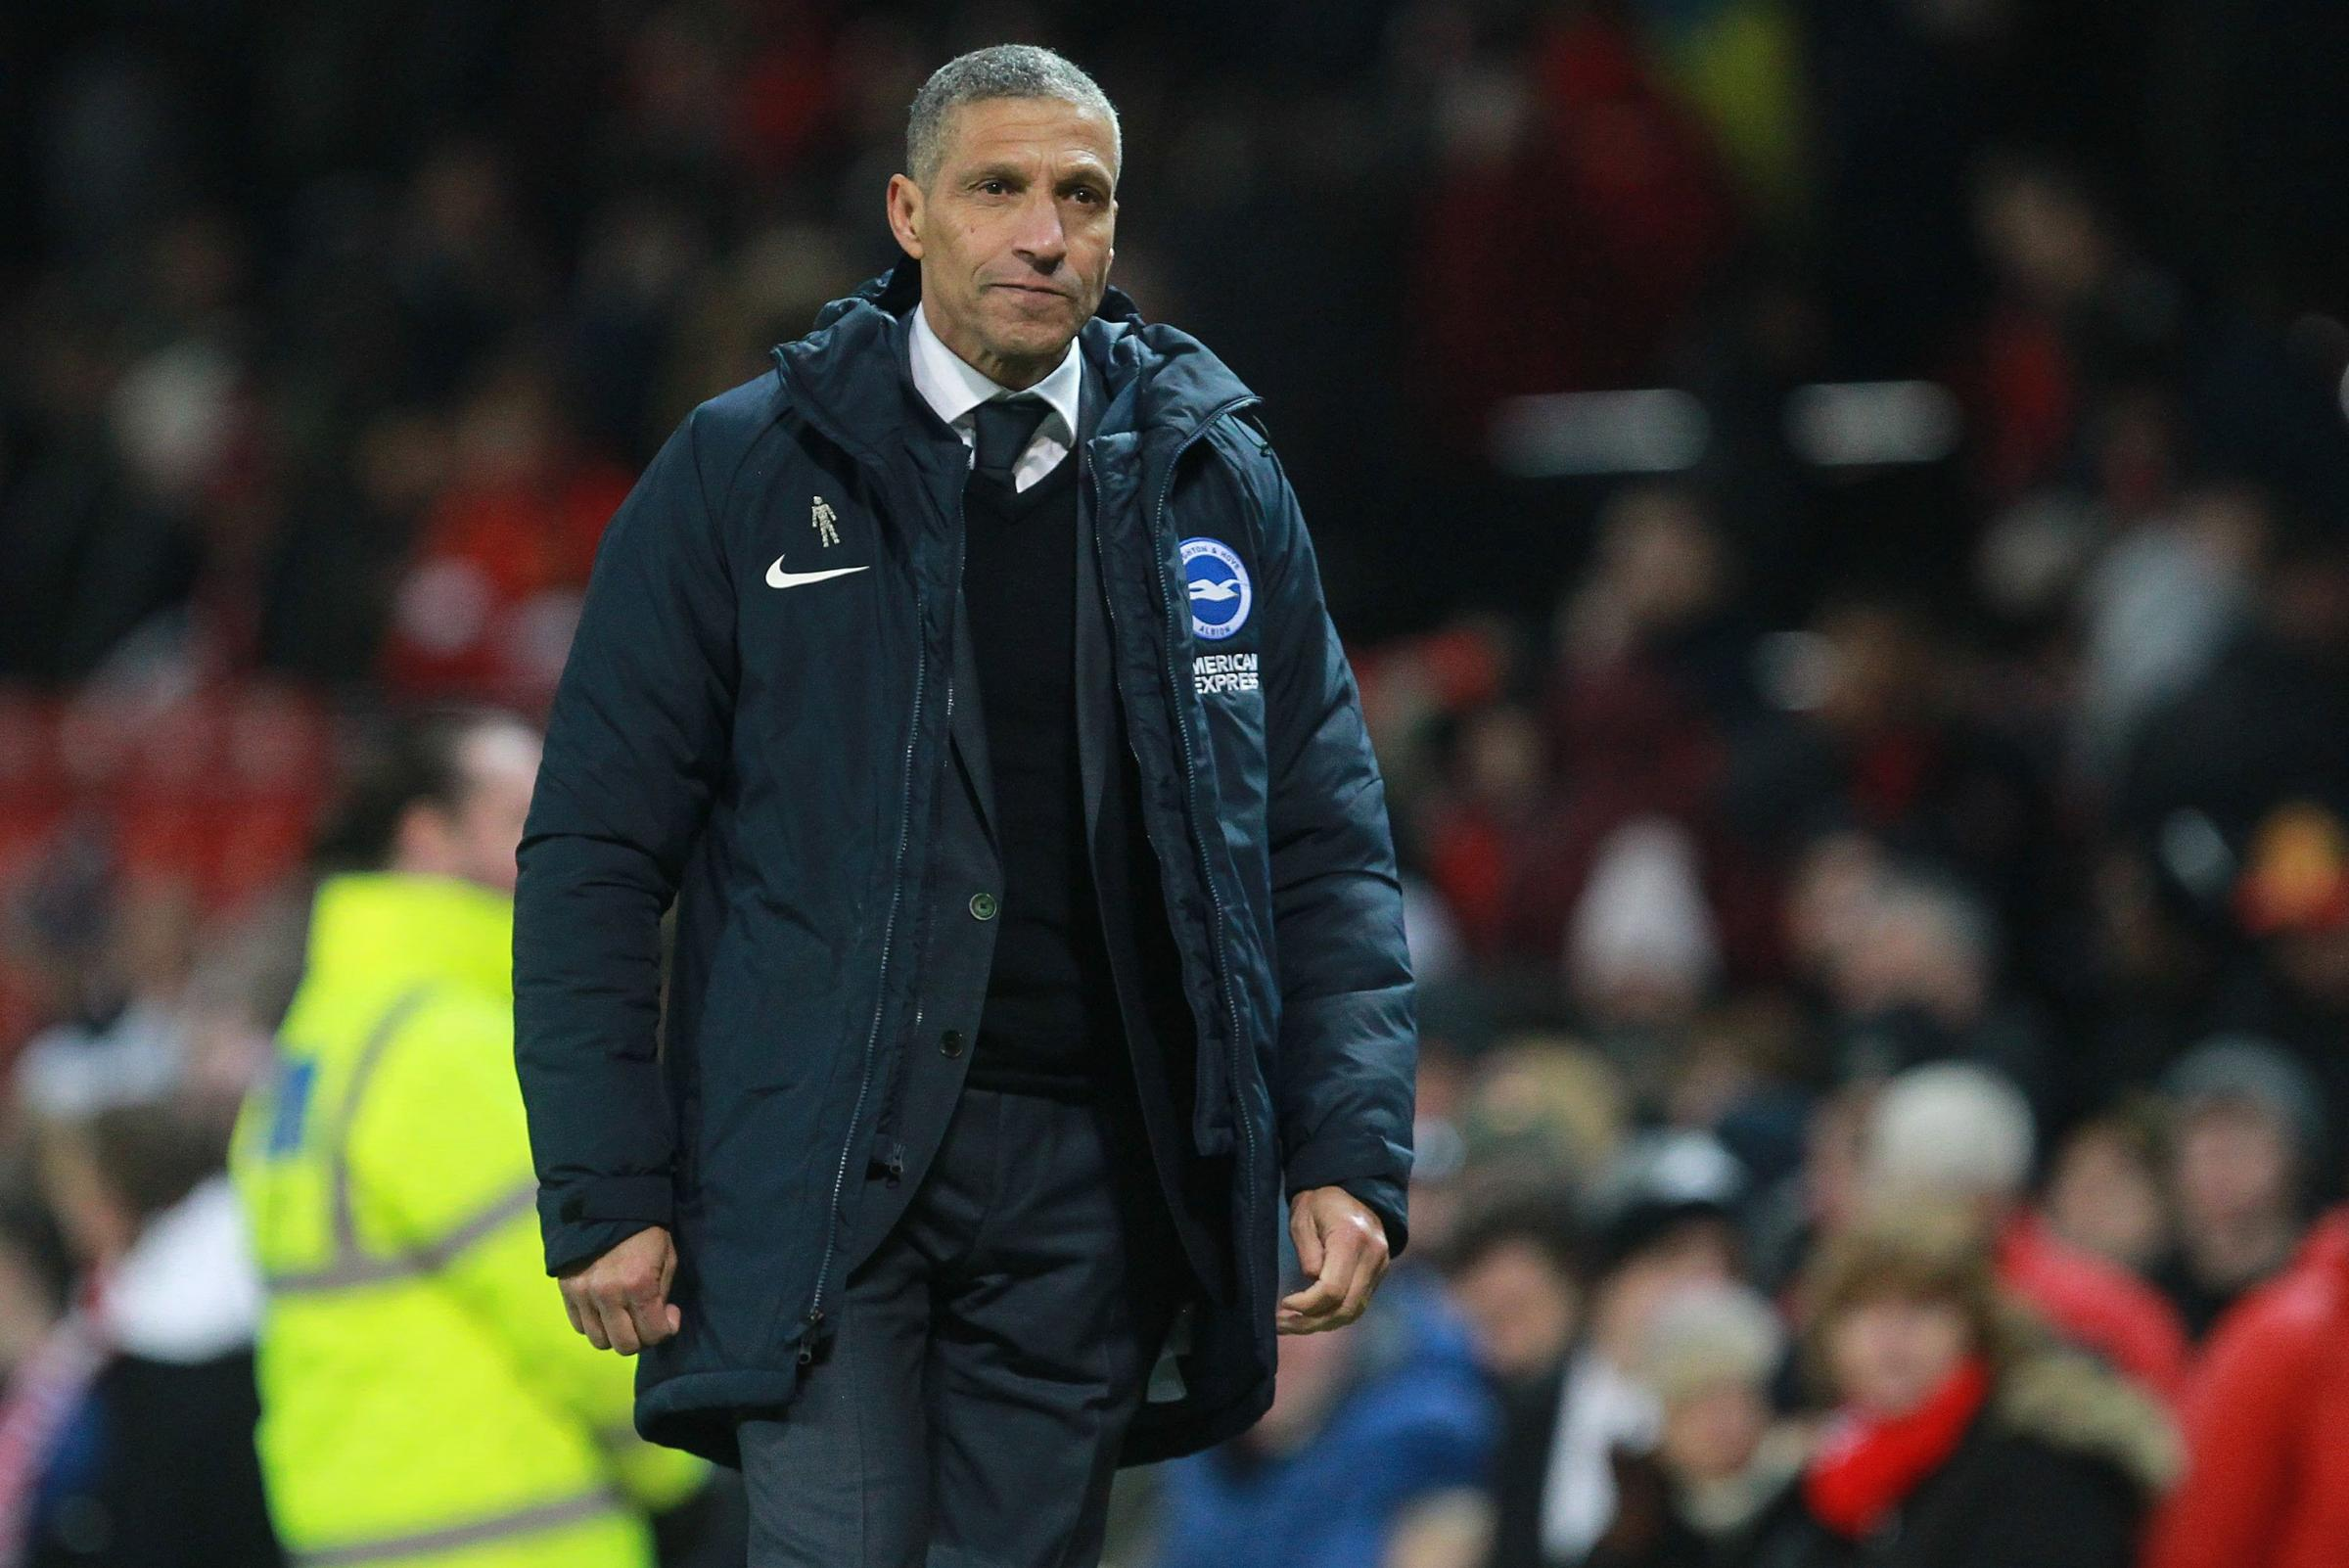 Hughton: We must rely on our own results to get out of trouble